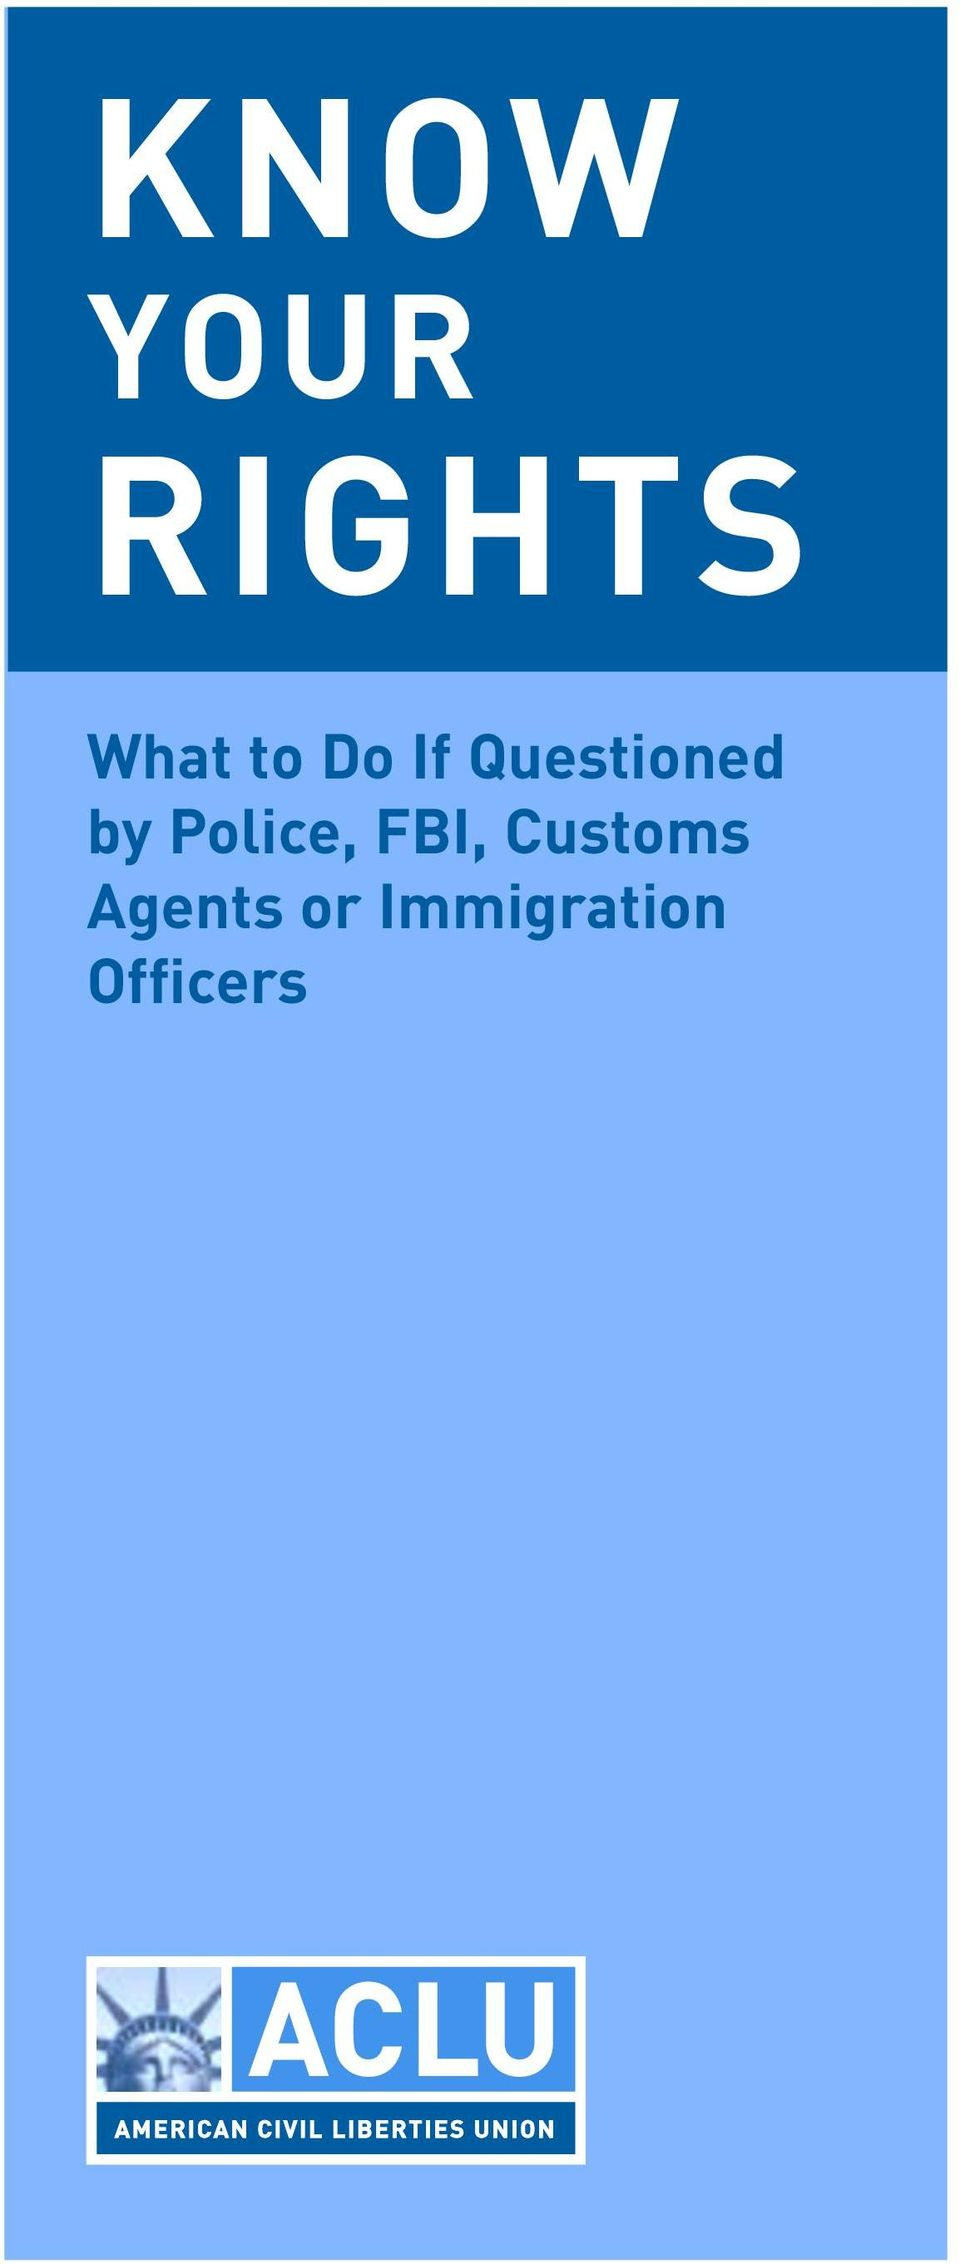 Police, FBI, Customs